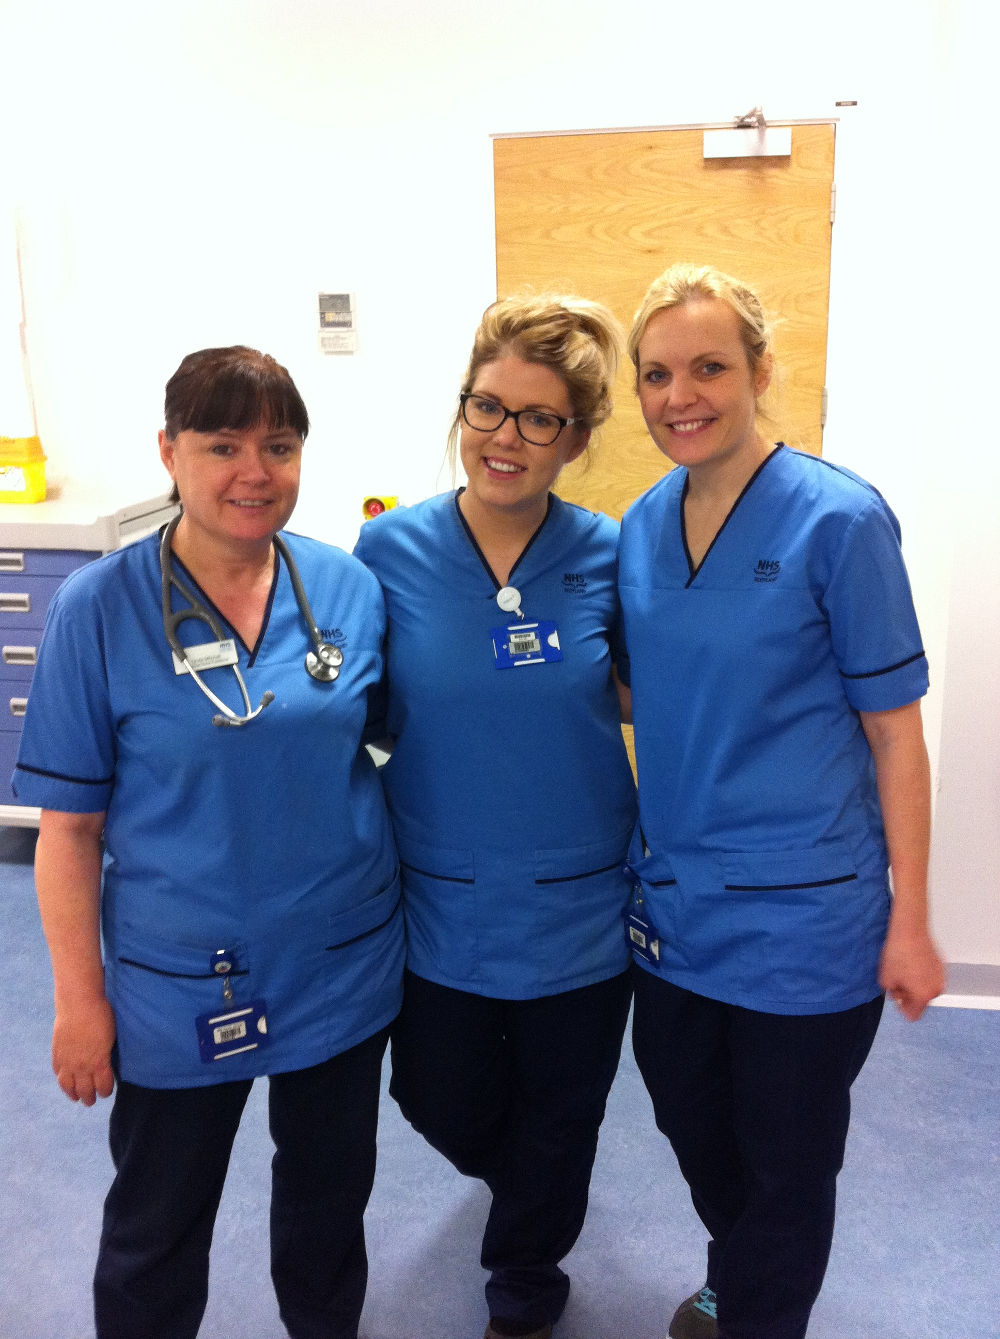 The wonderful Linda Tegan and Claire who attended me at the hospital